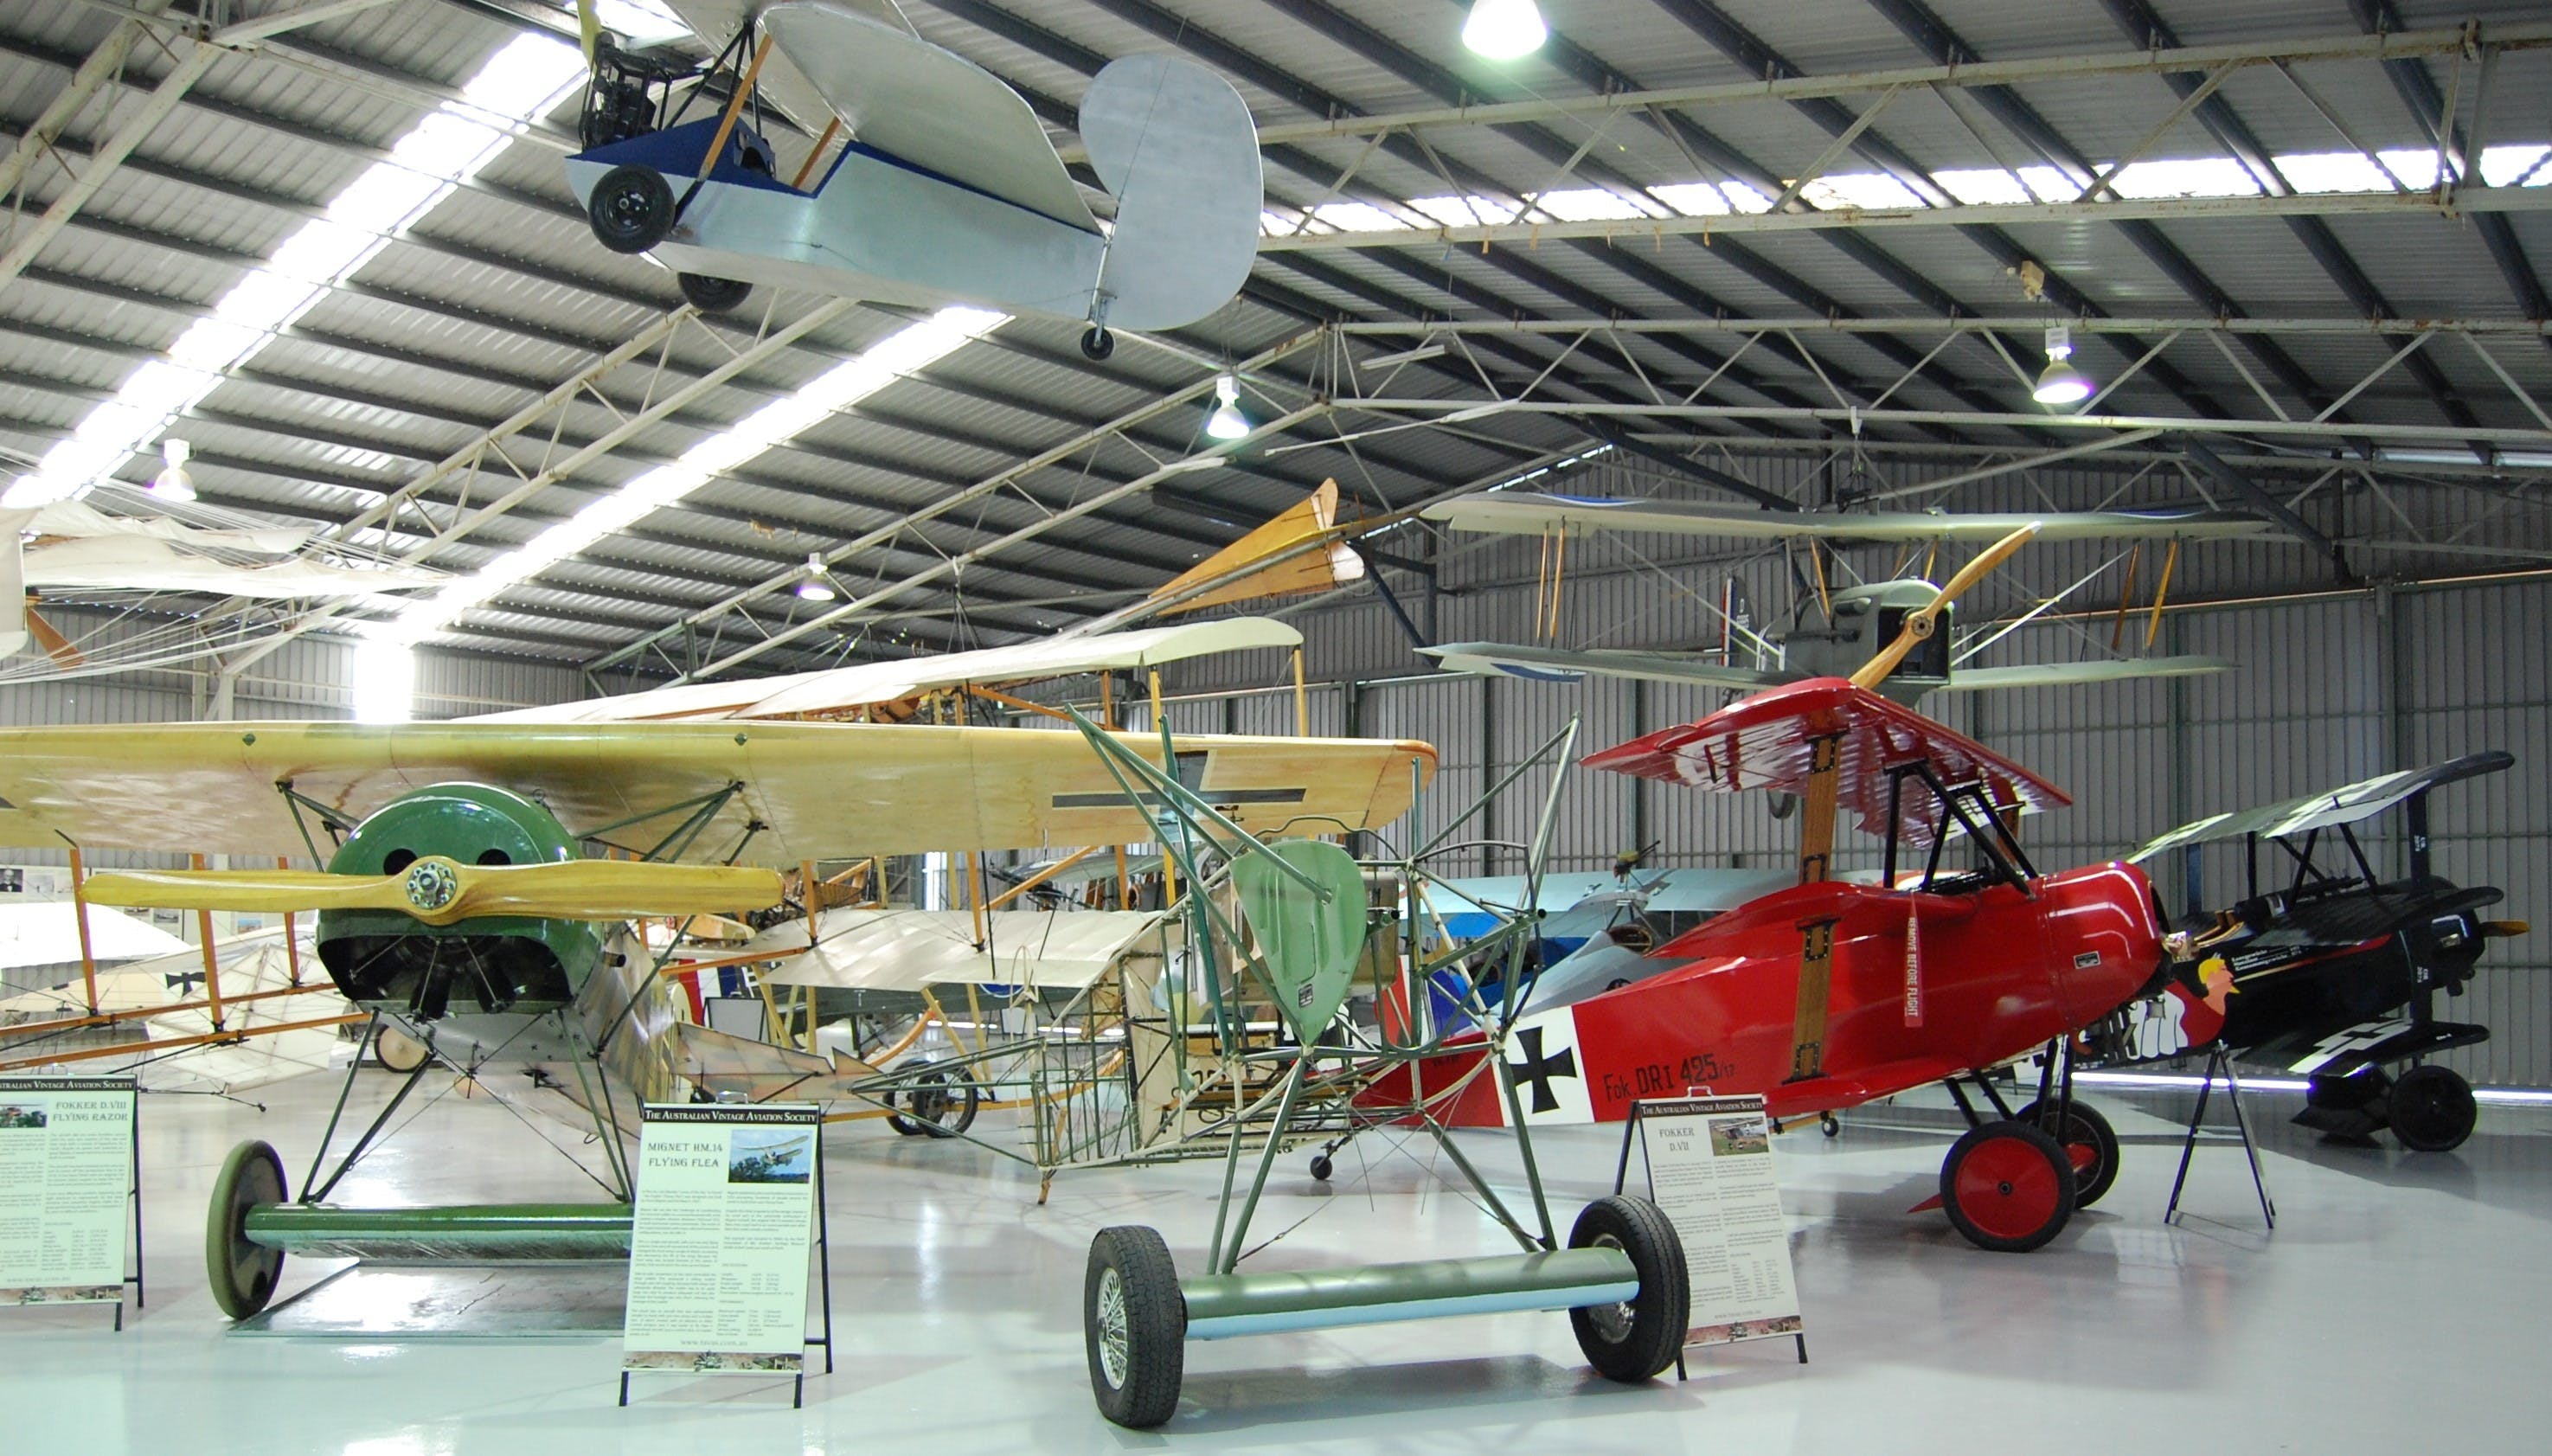 The Australian Vintage Aviation Society Museum - Tourism Brisbane